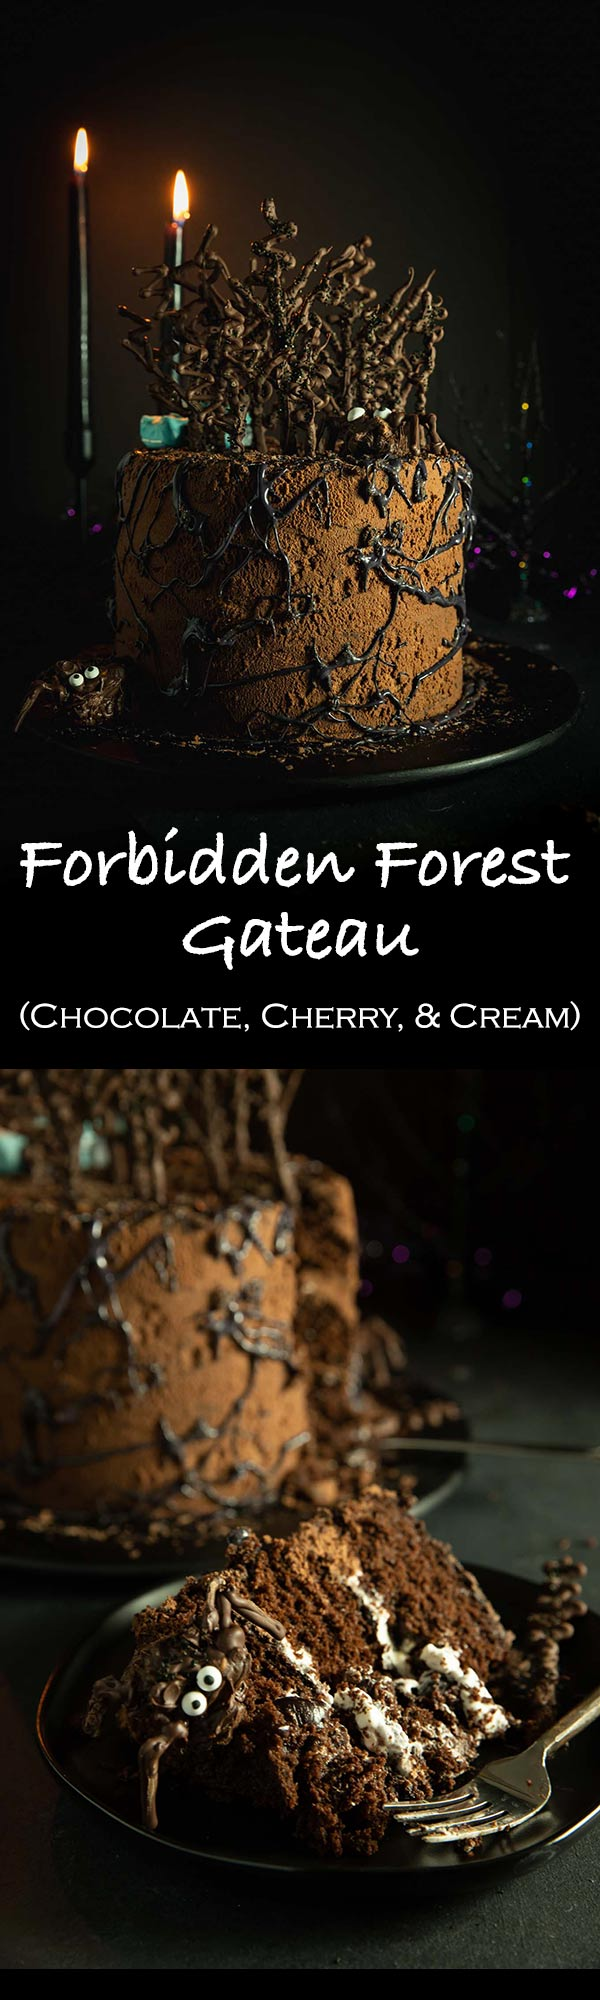 This homemade black forest cake is filled with cherries and themed after the Harry Potter Forbidden Forest! Look out for spiders and the Weasley's fondant car!